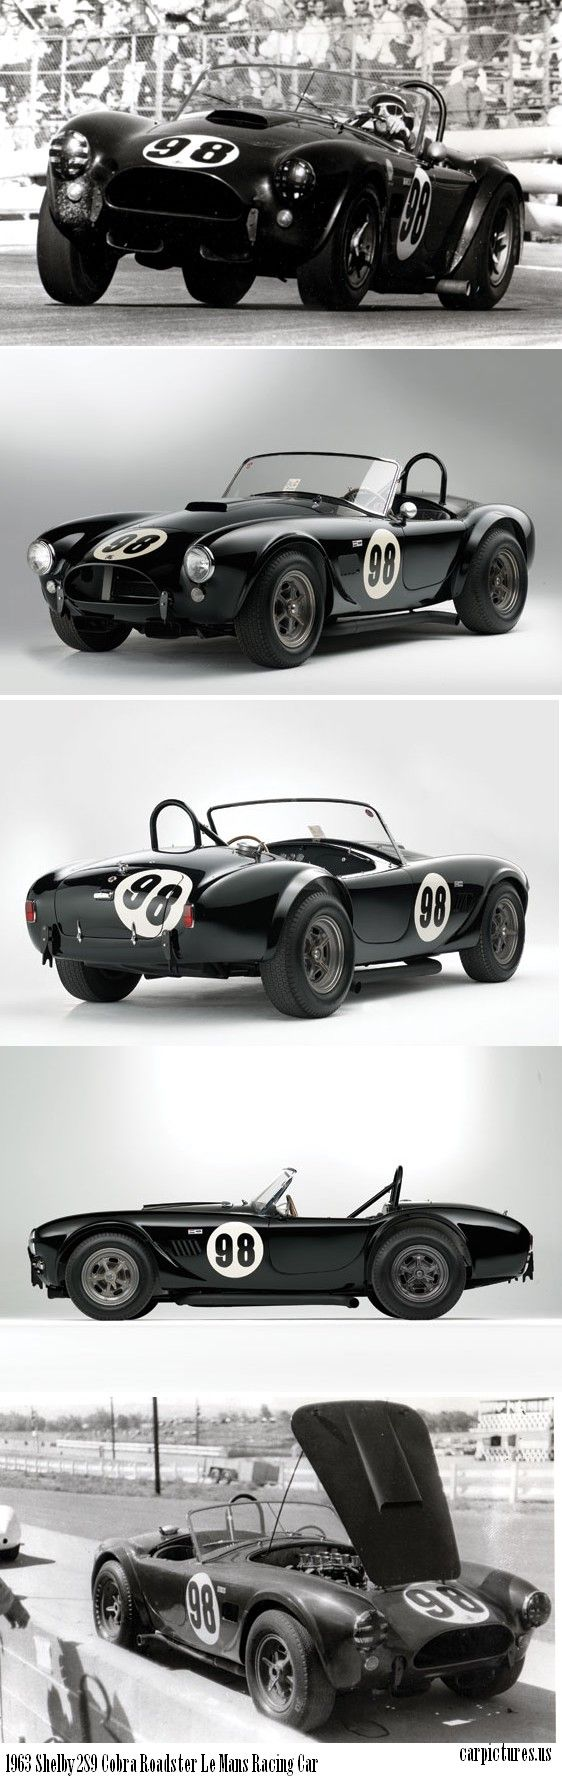 1963 Shelby 289 Cobra Roadster Le Mans Racing Car